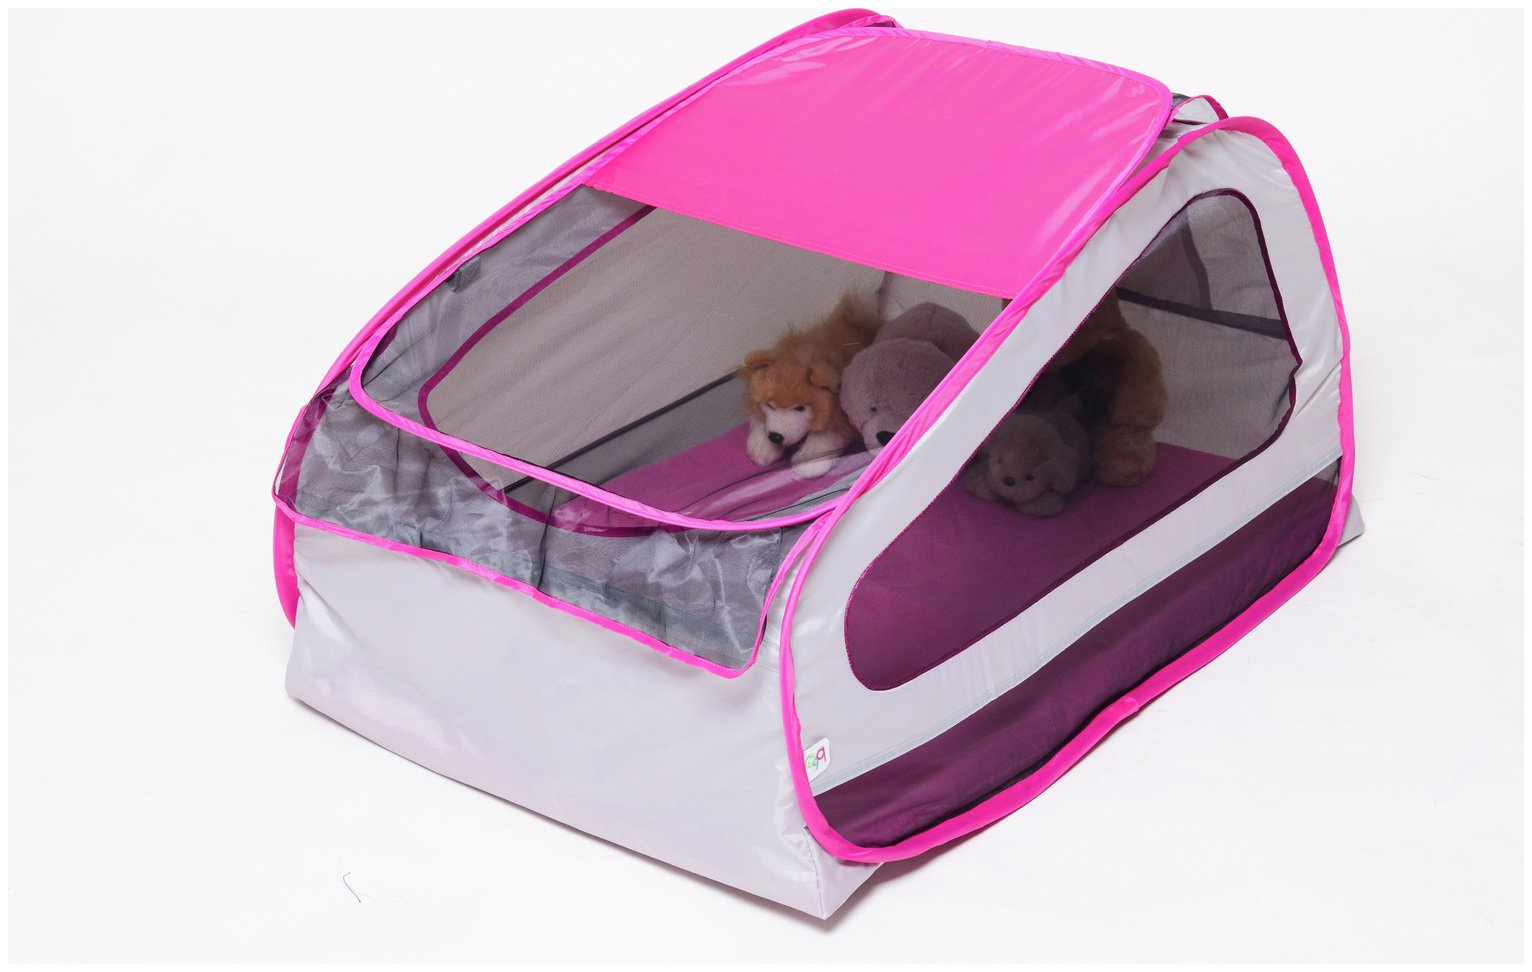 Image of BBGG Pop Up Baby Travel Cot - Pink